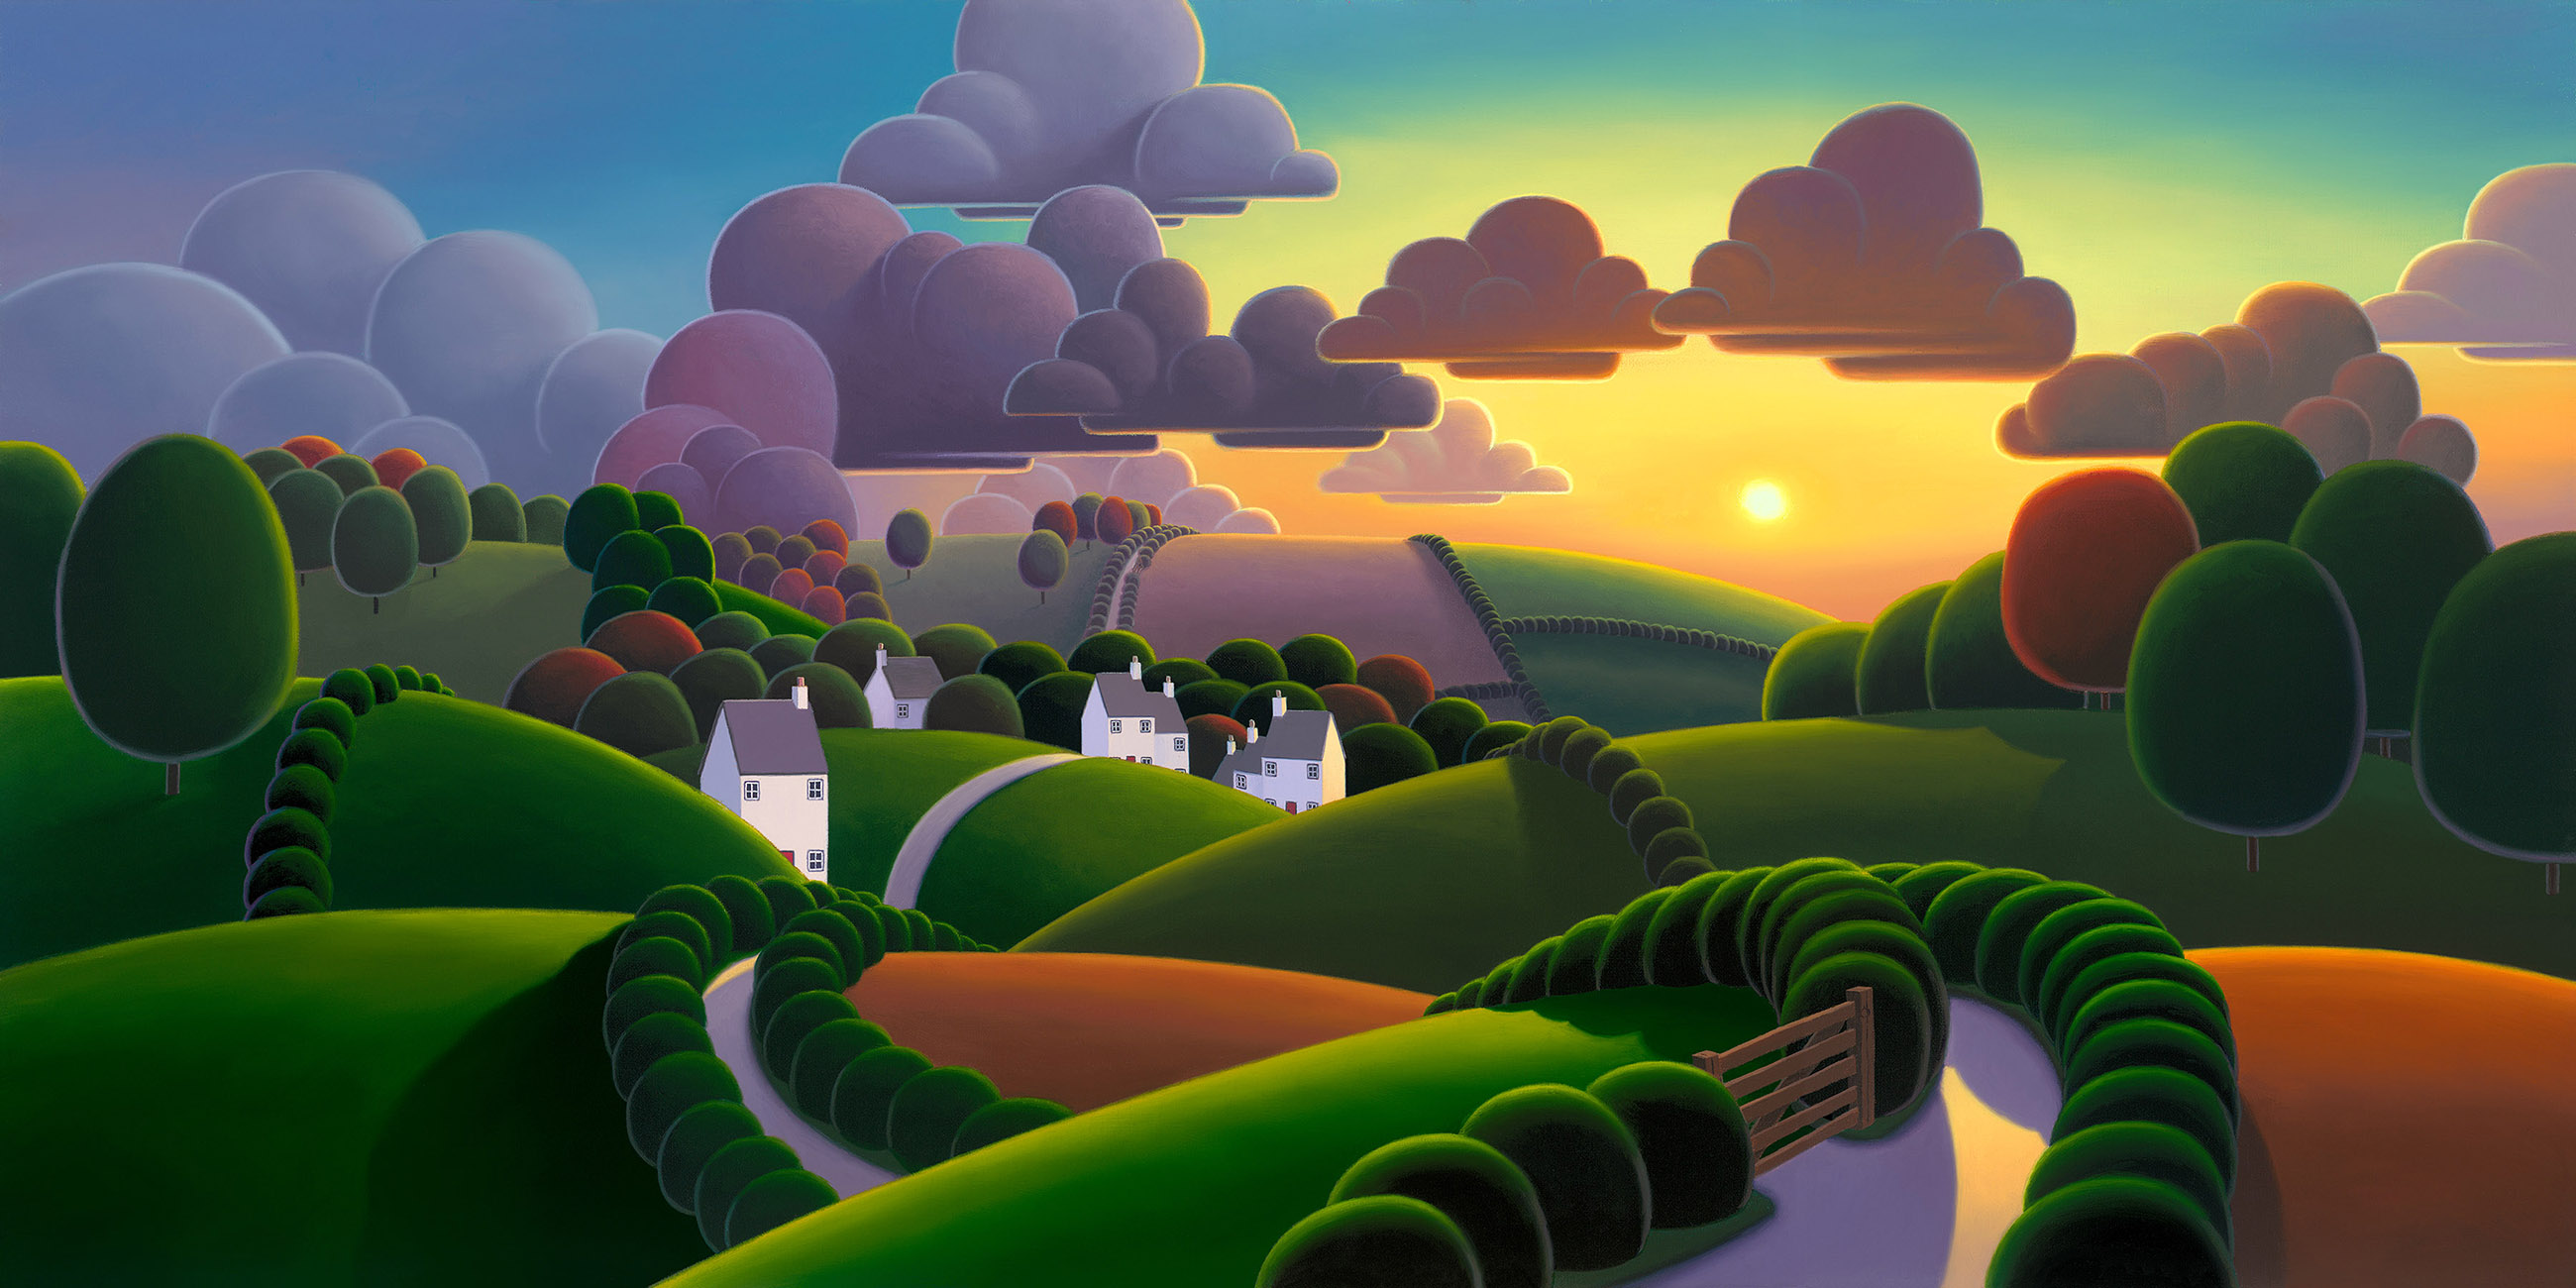 Sunrise Over the Village by Paul Corfield